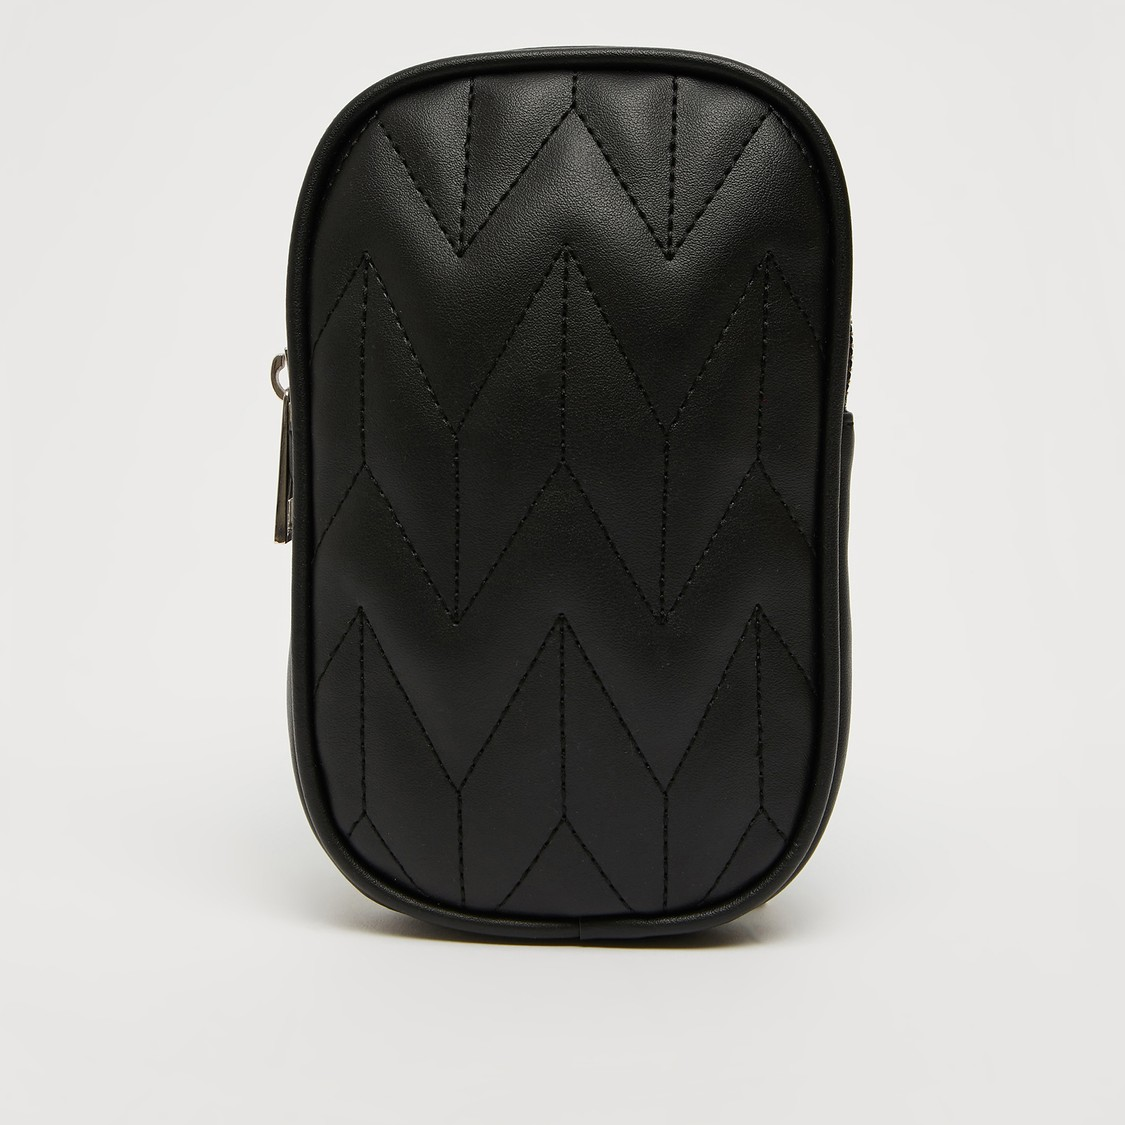 Quilted Crossbody Bag with Metallic Chain and Zip Closure